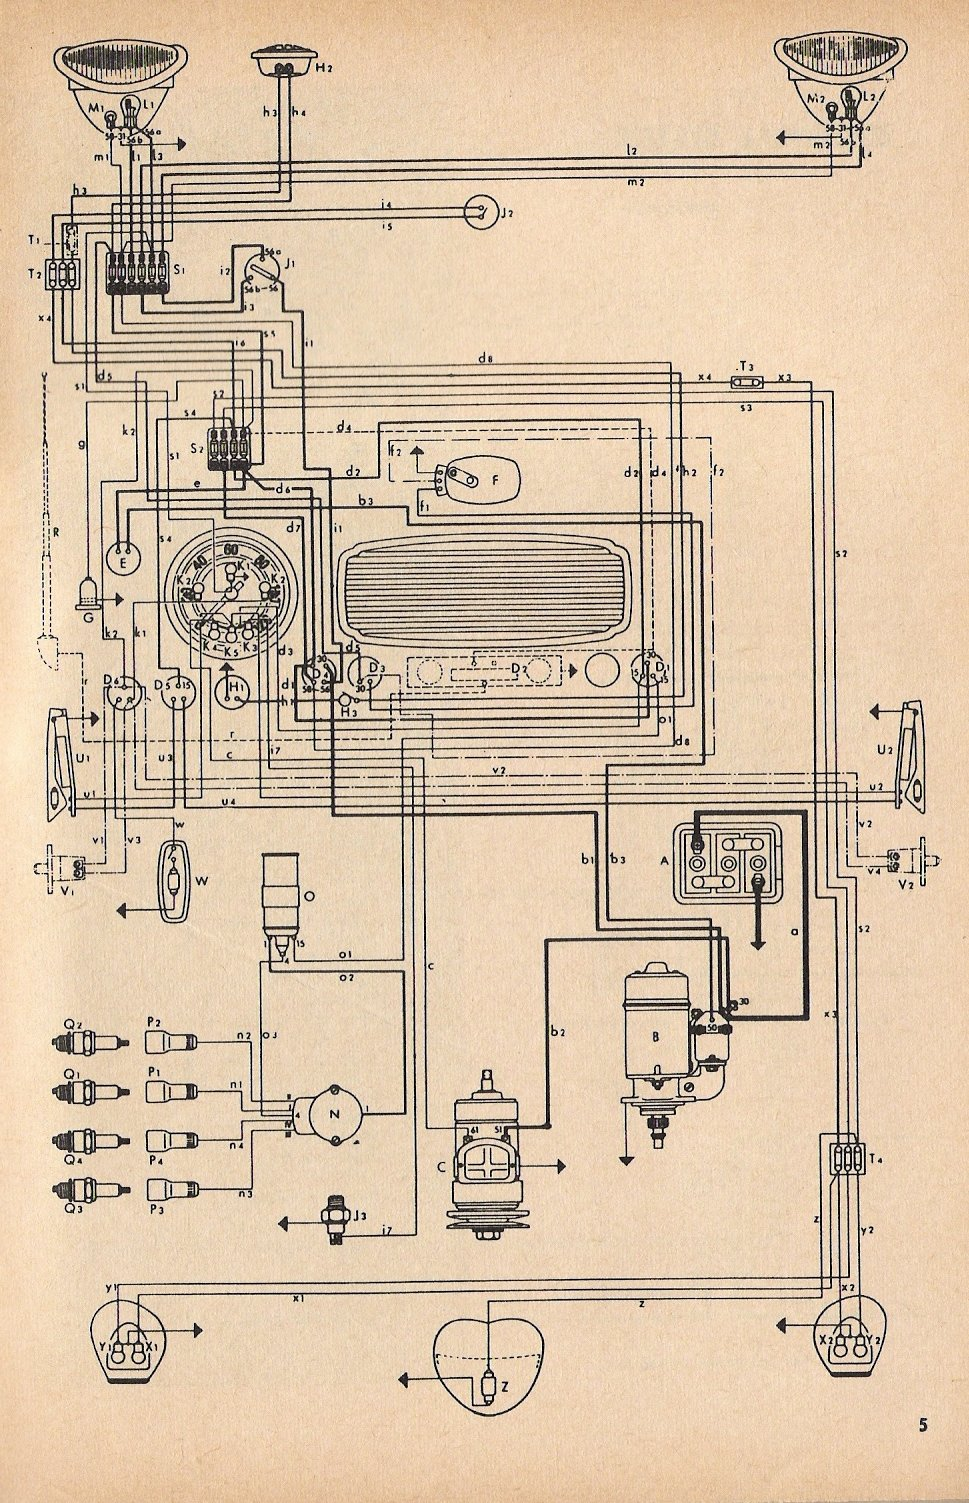 wiring diagram for 1967 vw beetle wiring diagram 1957 chevy 1967 vw beetle 1952-53 beetle wiring diagram | thegoldenbug.com #8